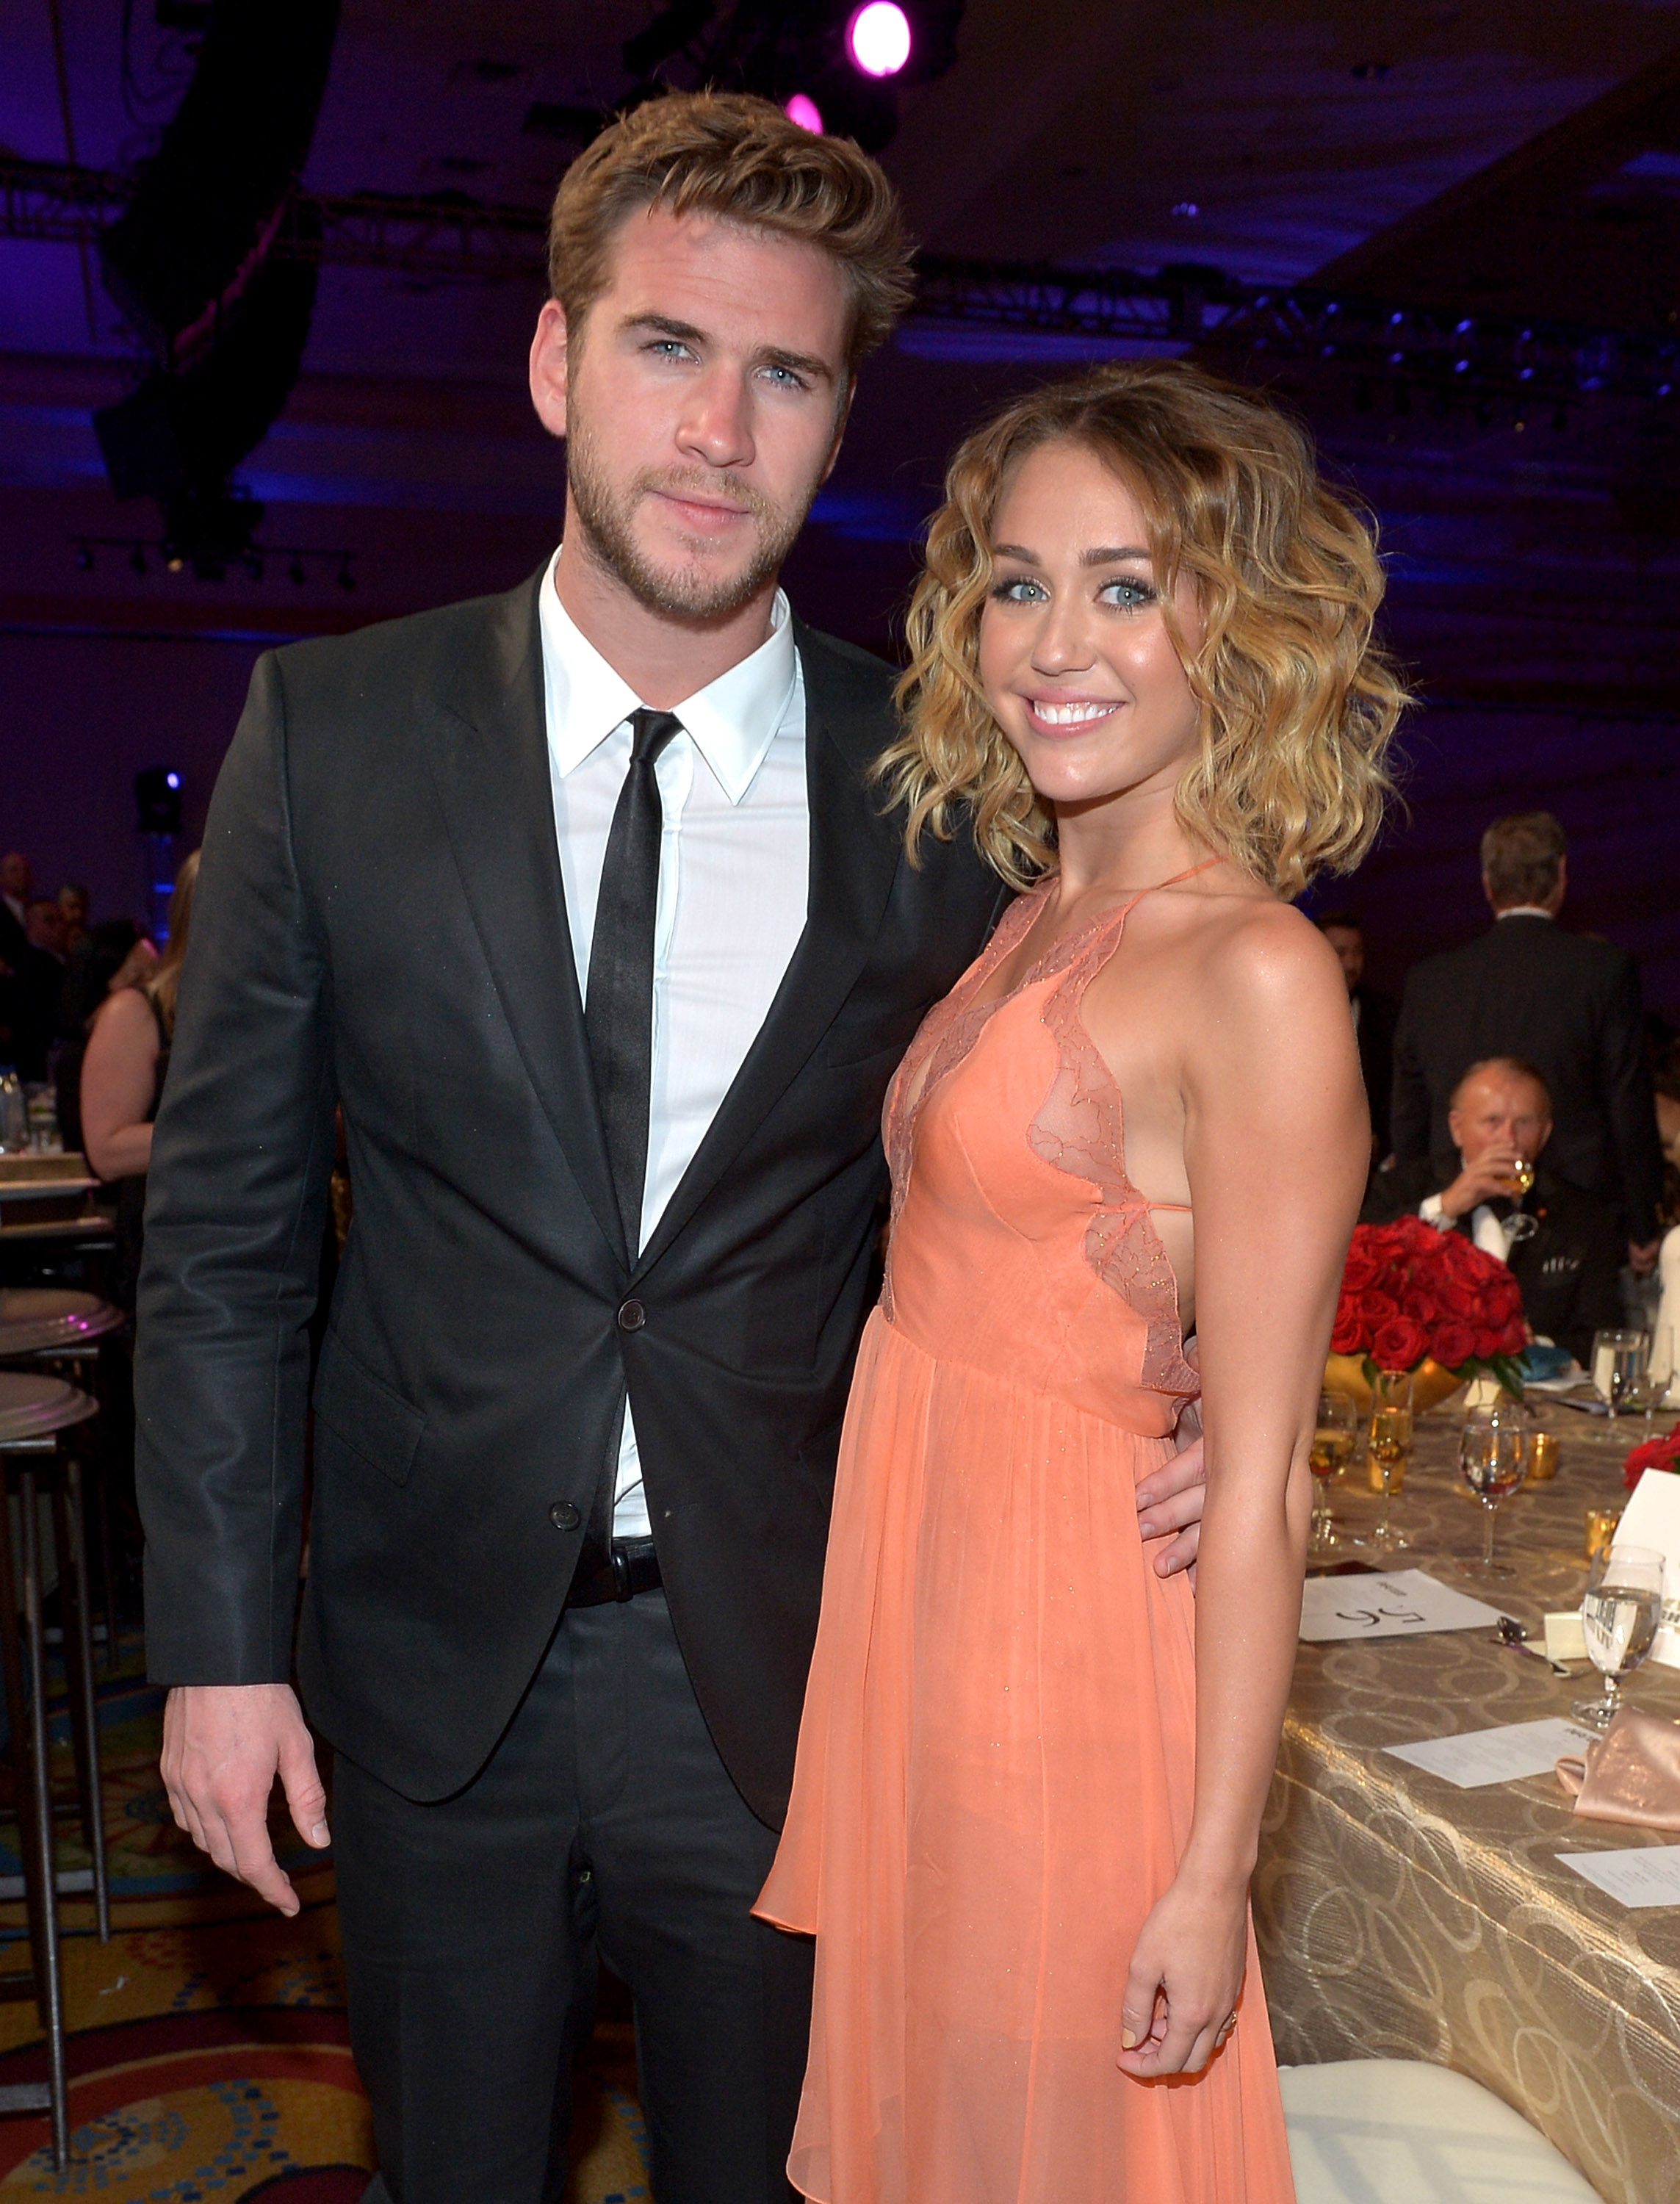 Miley dating an older